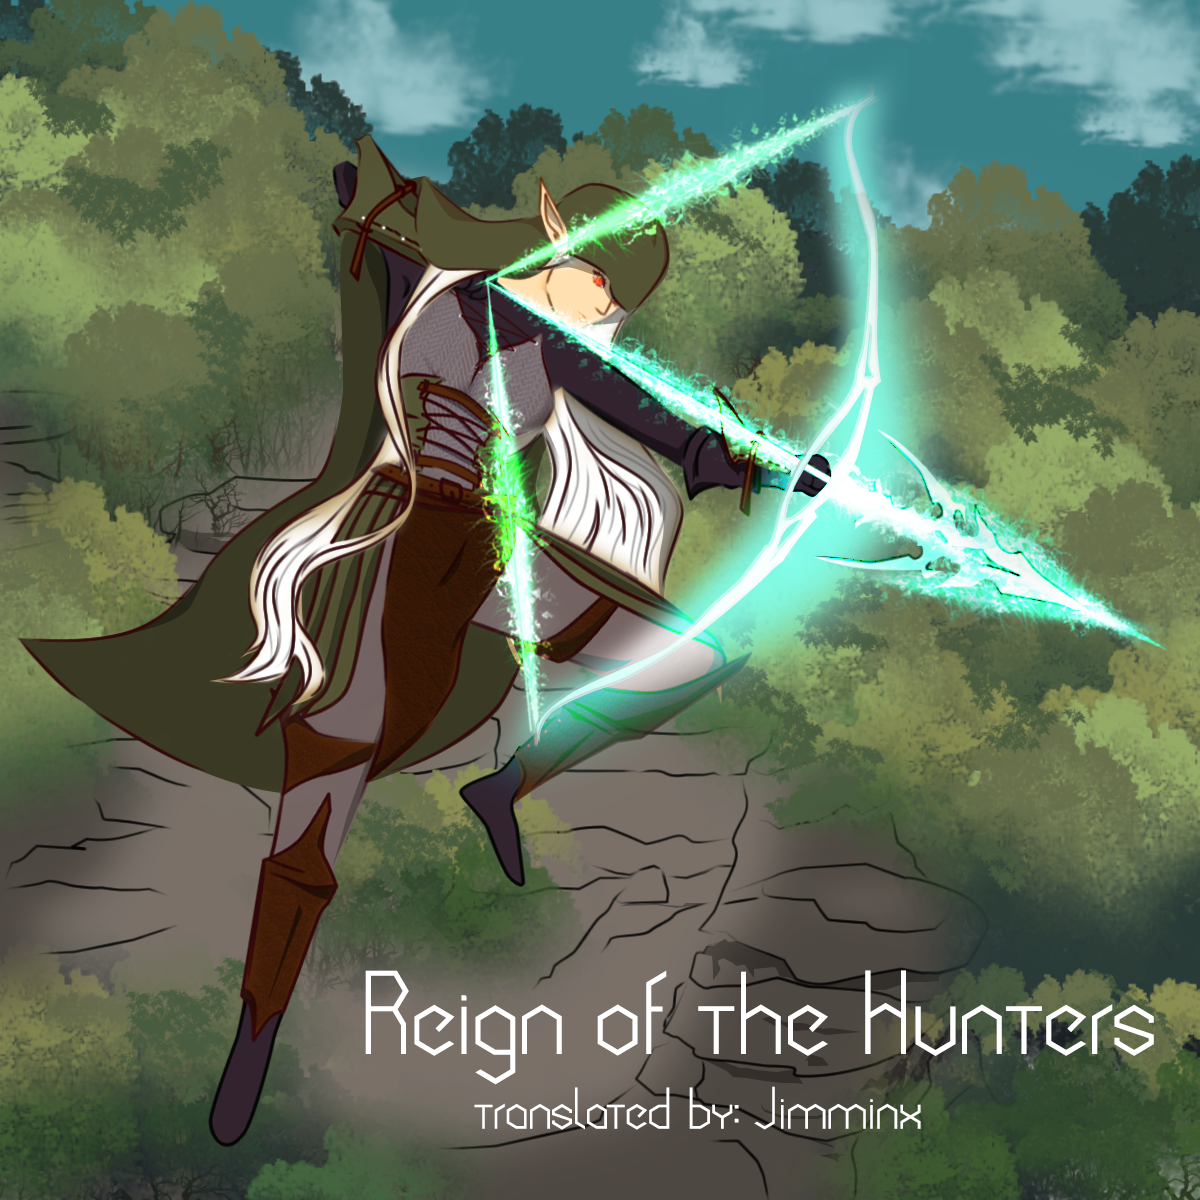 Reign of the Hunters volare novels Sword and sorcery